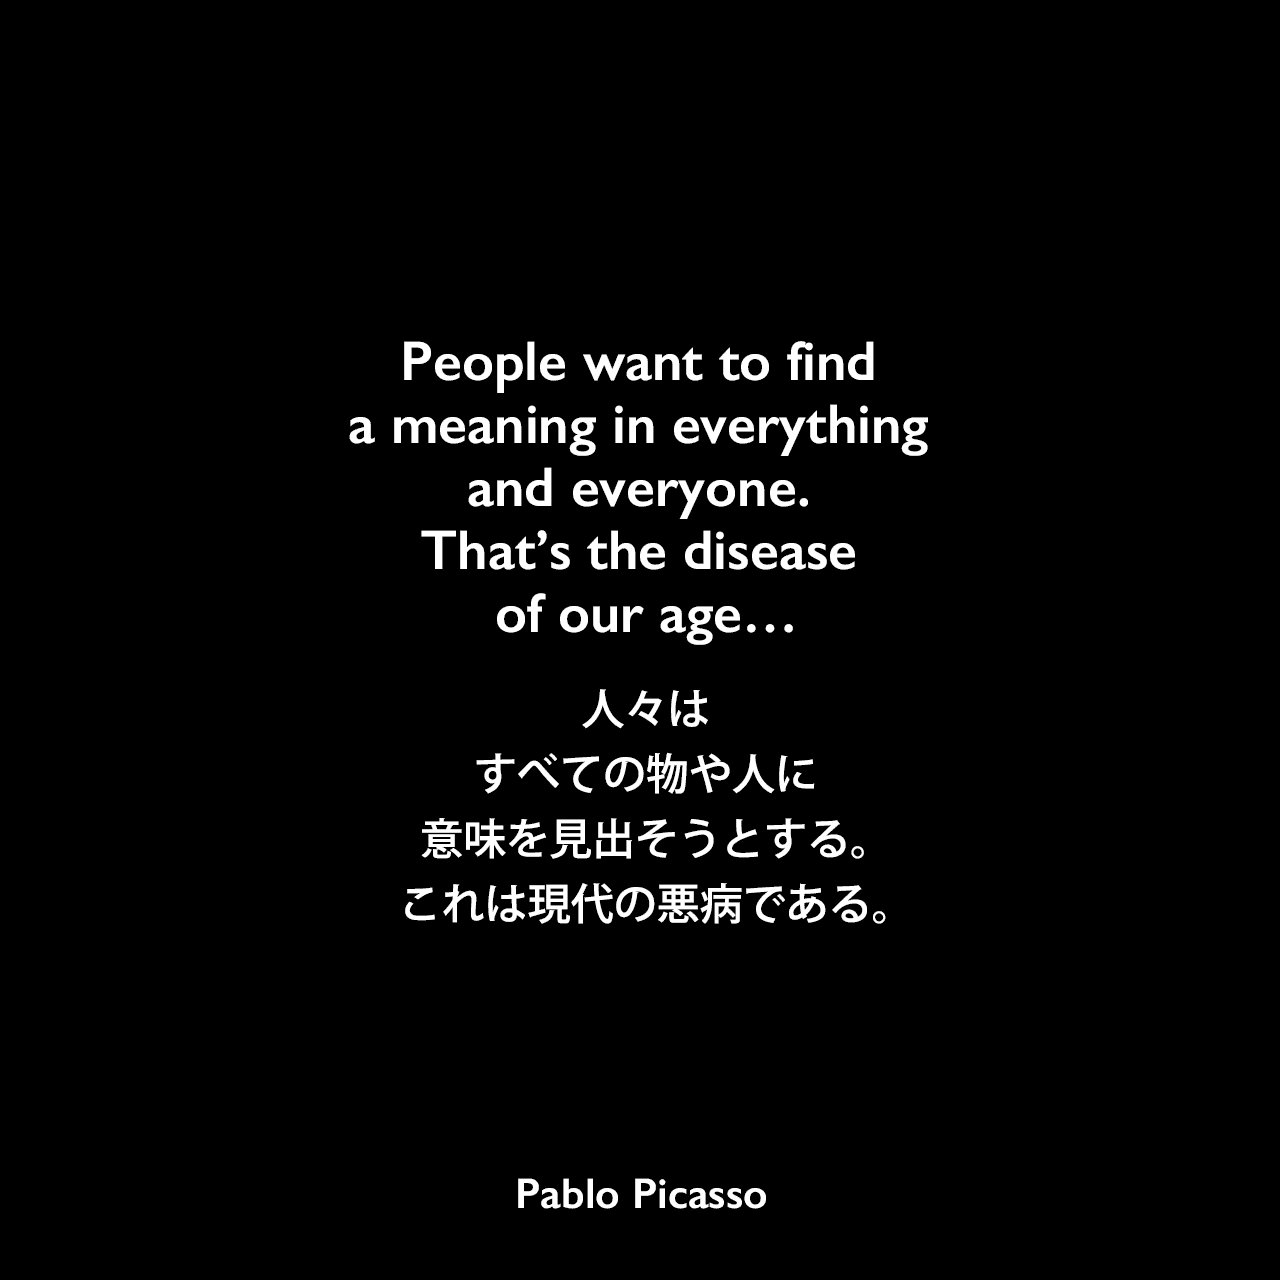 People want to find a meaning in everything and everyone. That's the disease of our age…人々はすべての物や人に意味を見出そうとする。これは現代の悪病である。Pablo Picasso